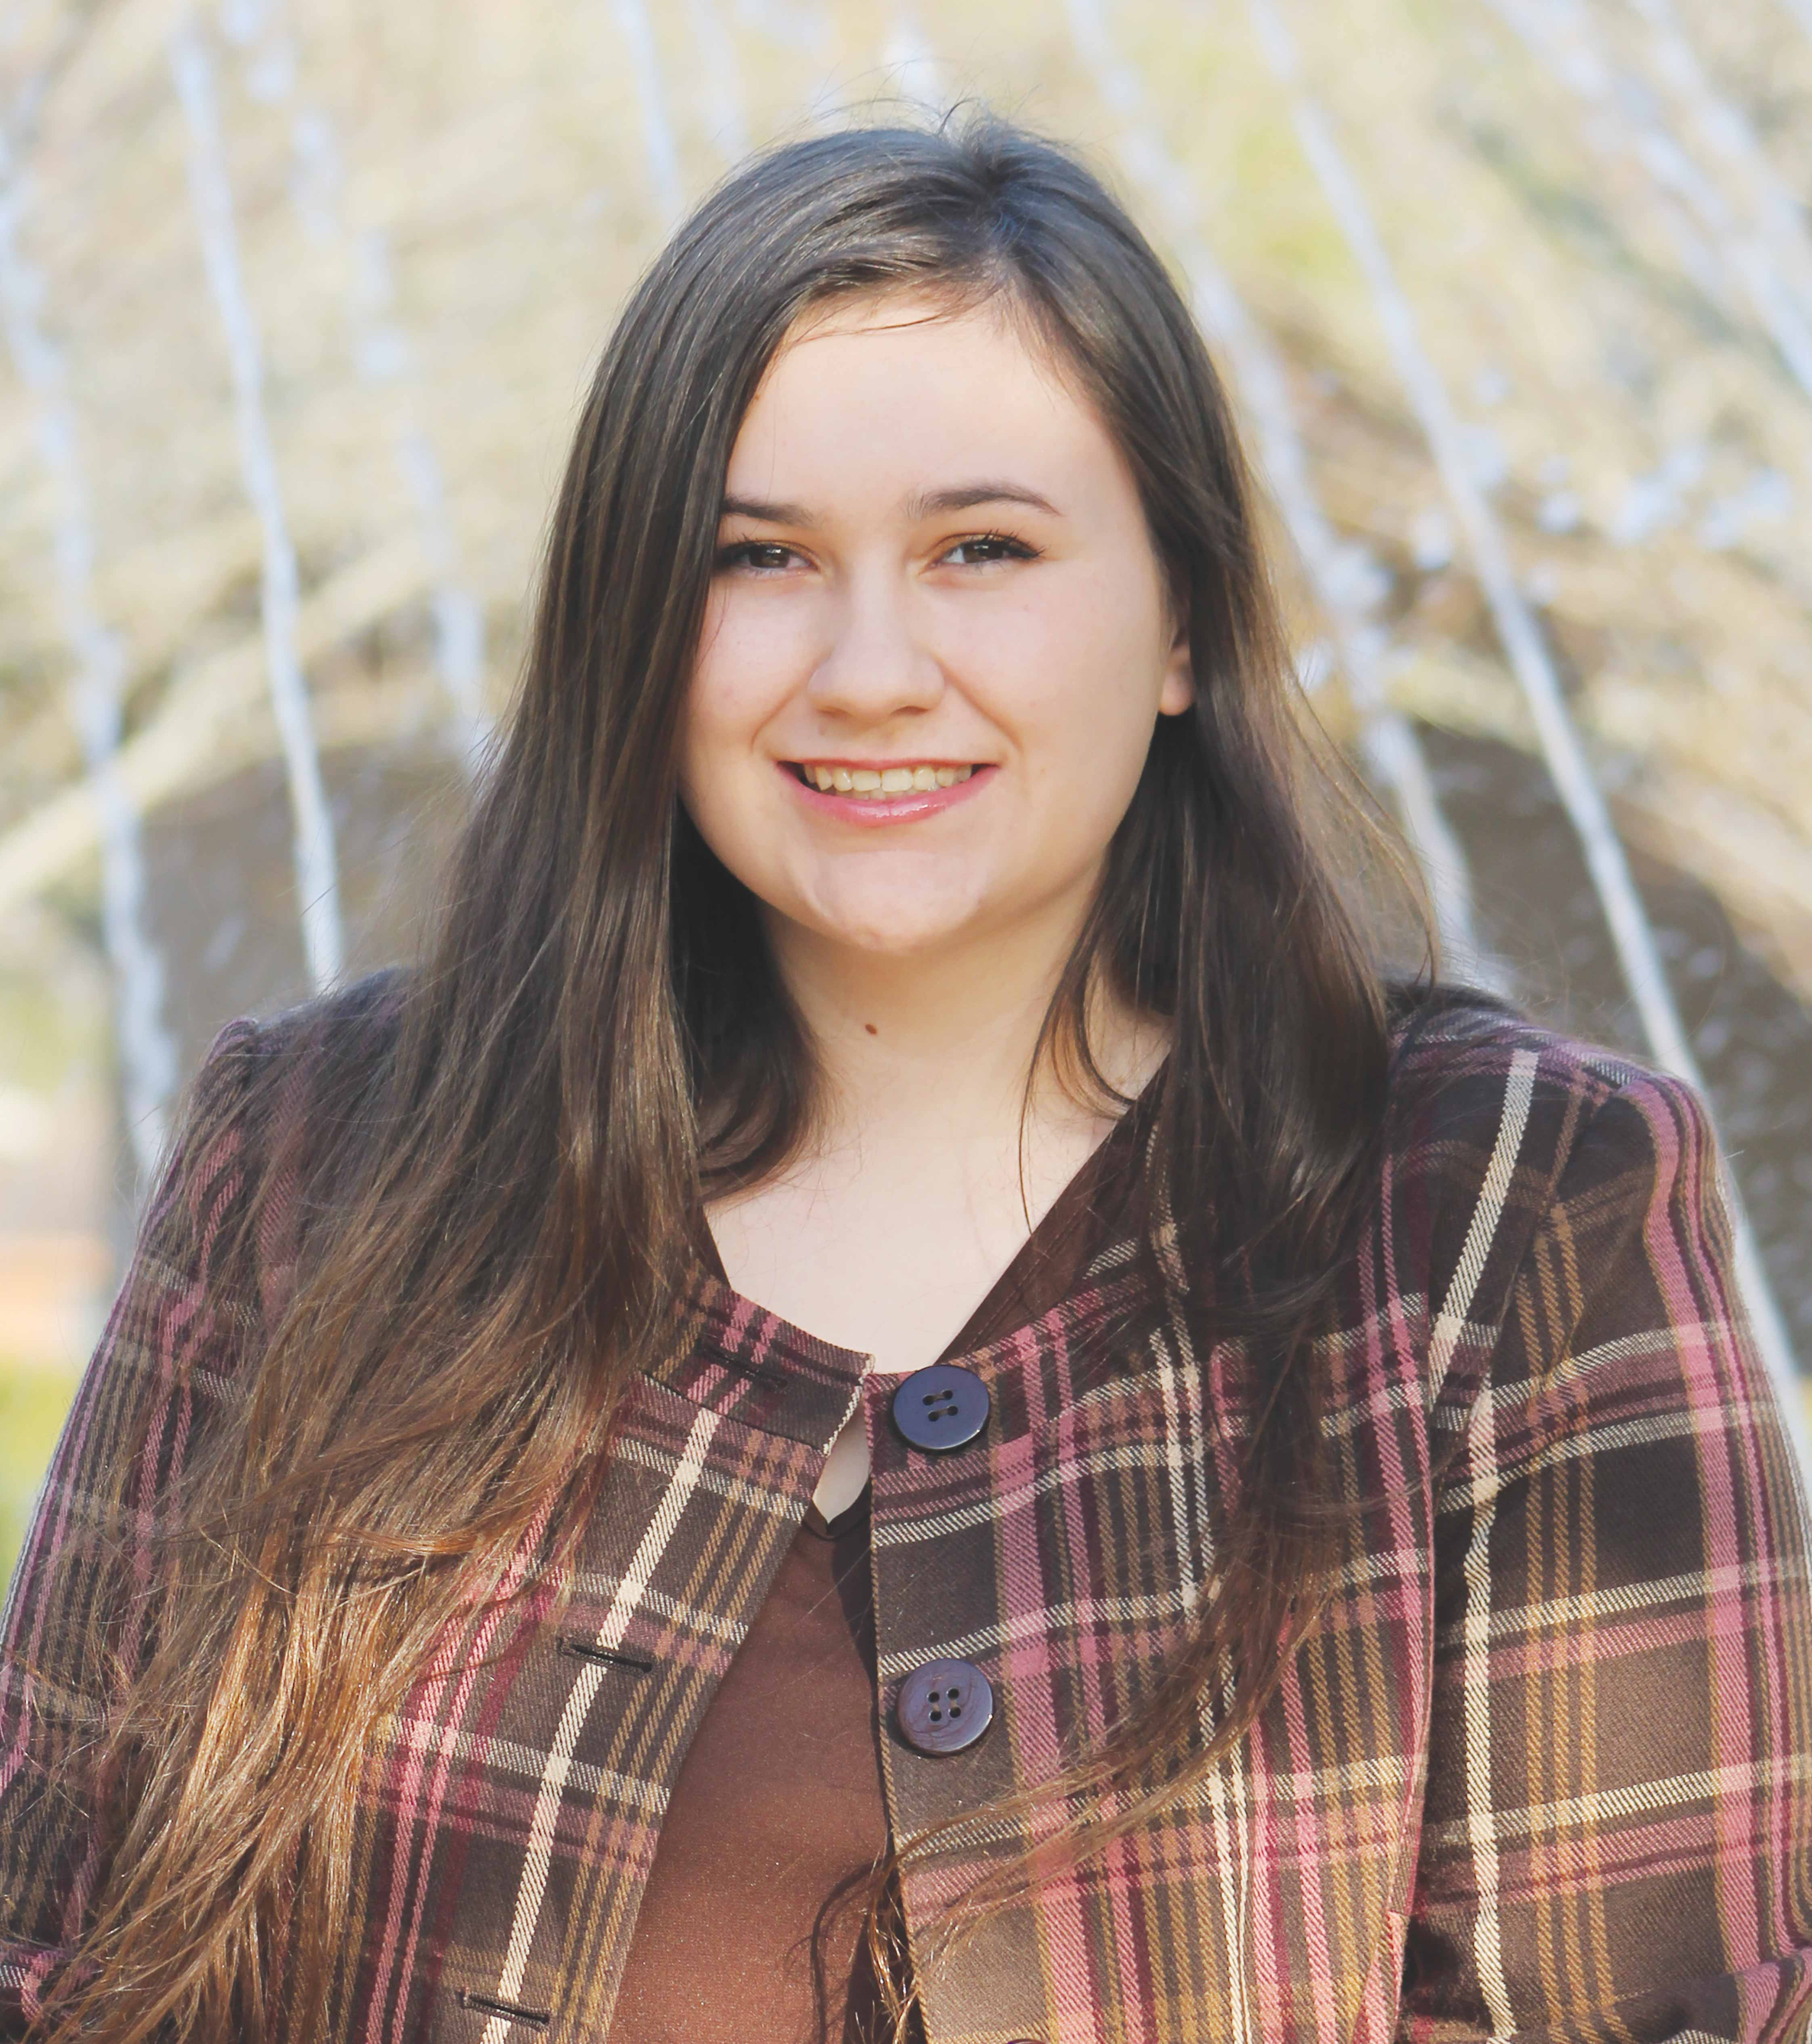 Anna Patton serves as a member of the board of executives for the Foster Care Clothing Closet, providing clothing for children in foster care.